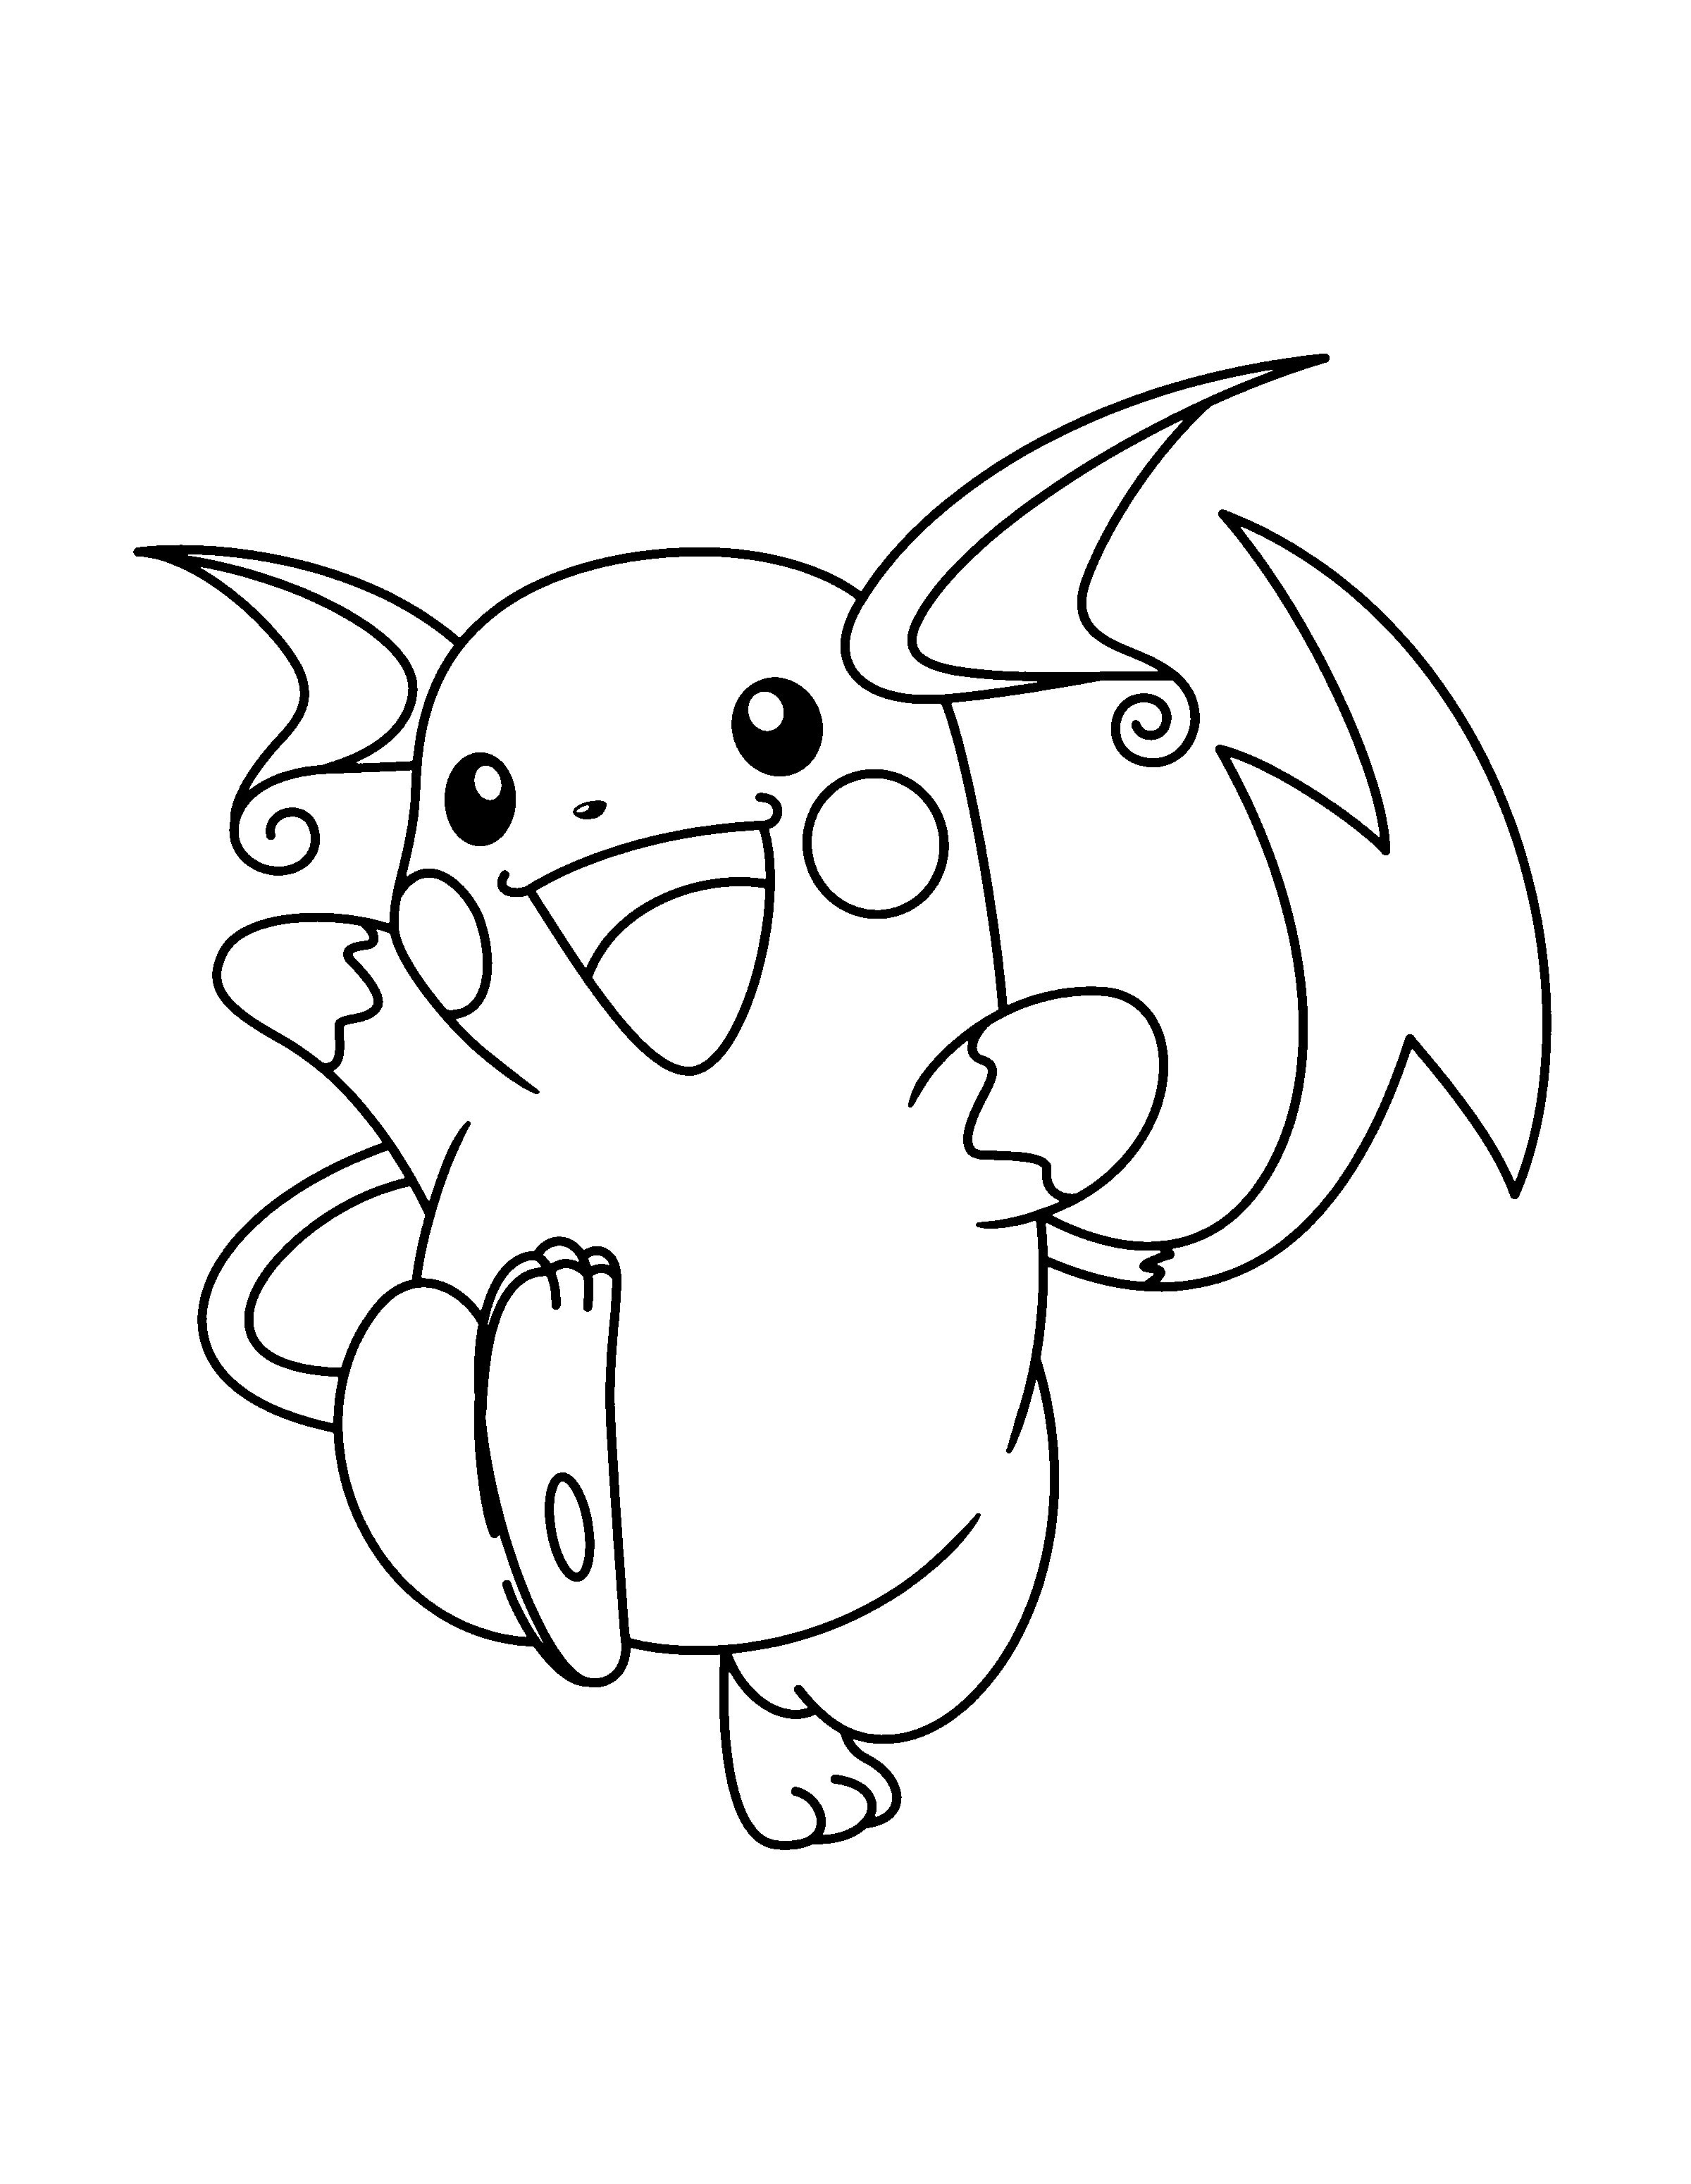 Raichu Coloring Pages To Print Pokemon Coloring Pages Pokemon Coloring Pokemon Coloring Sheets